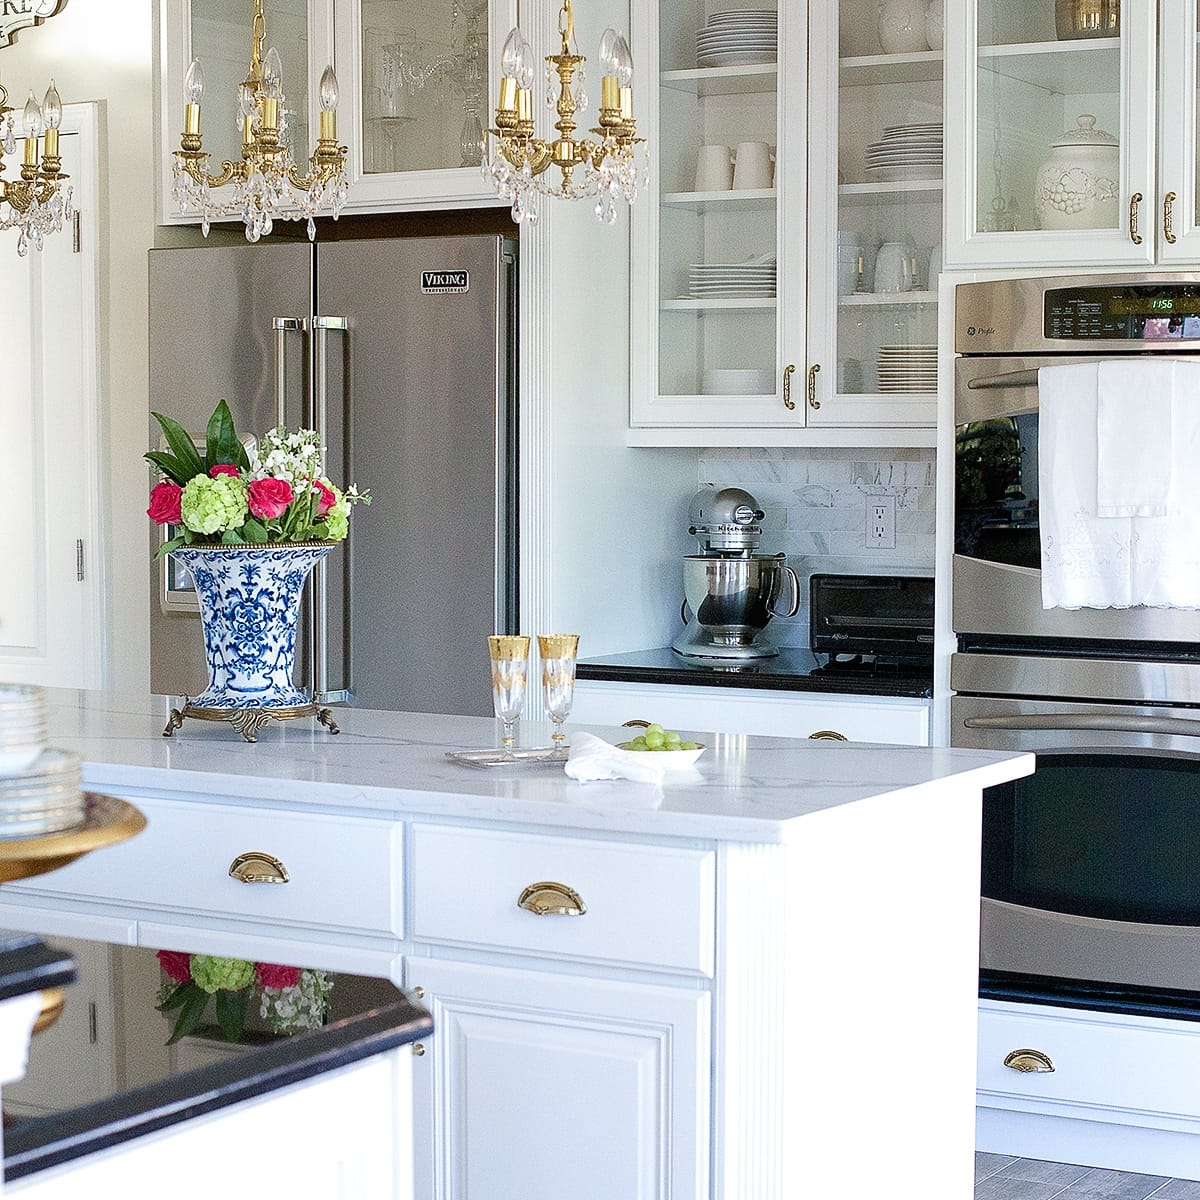 A Dramatic Kitchen Renovation Without Removing Cabinets